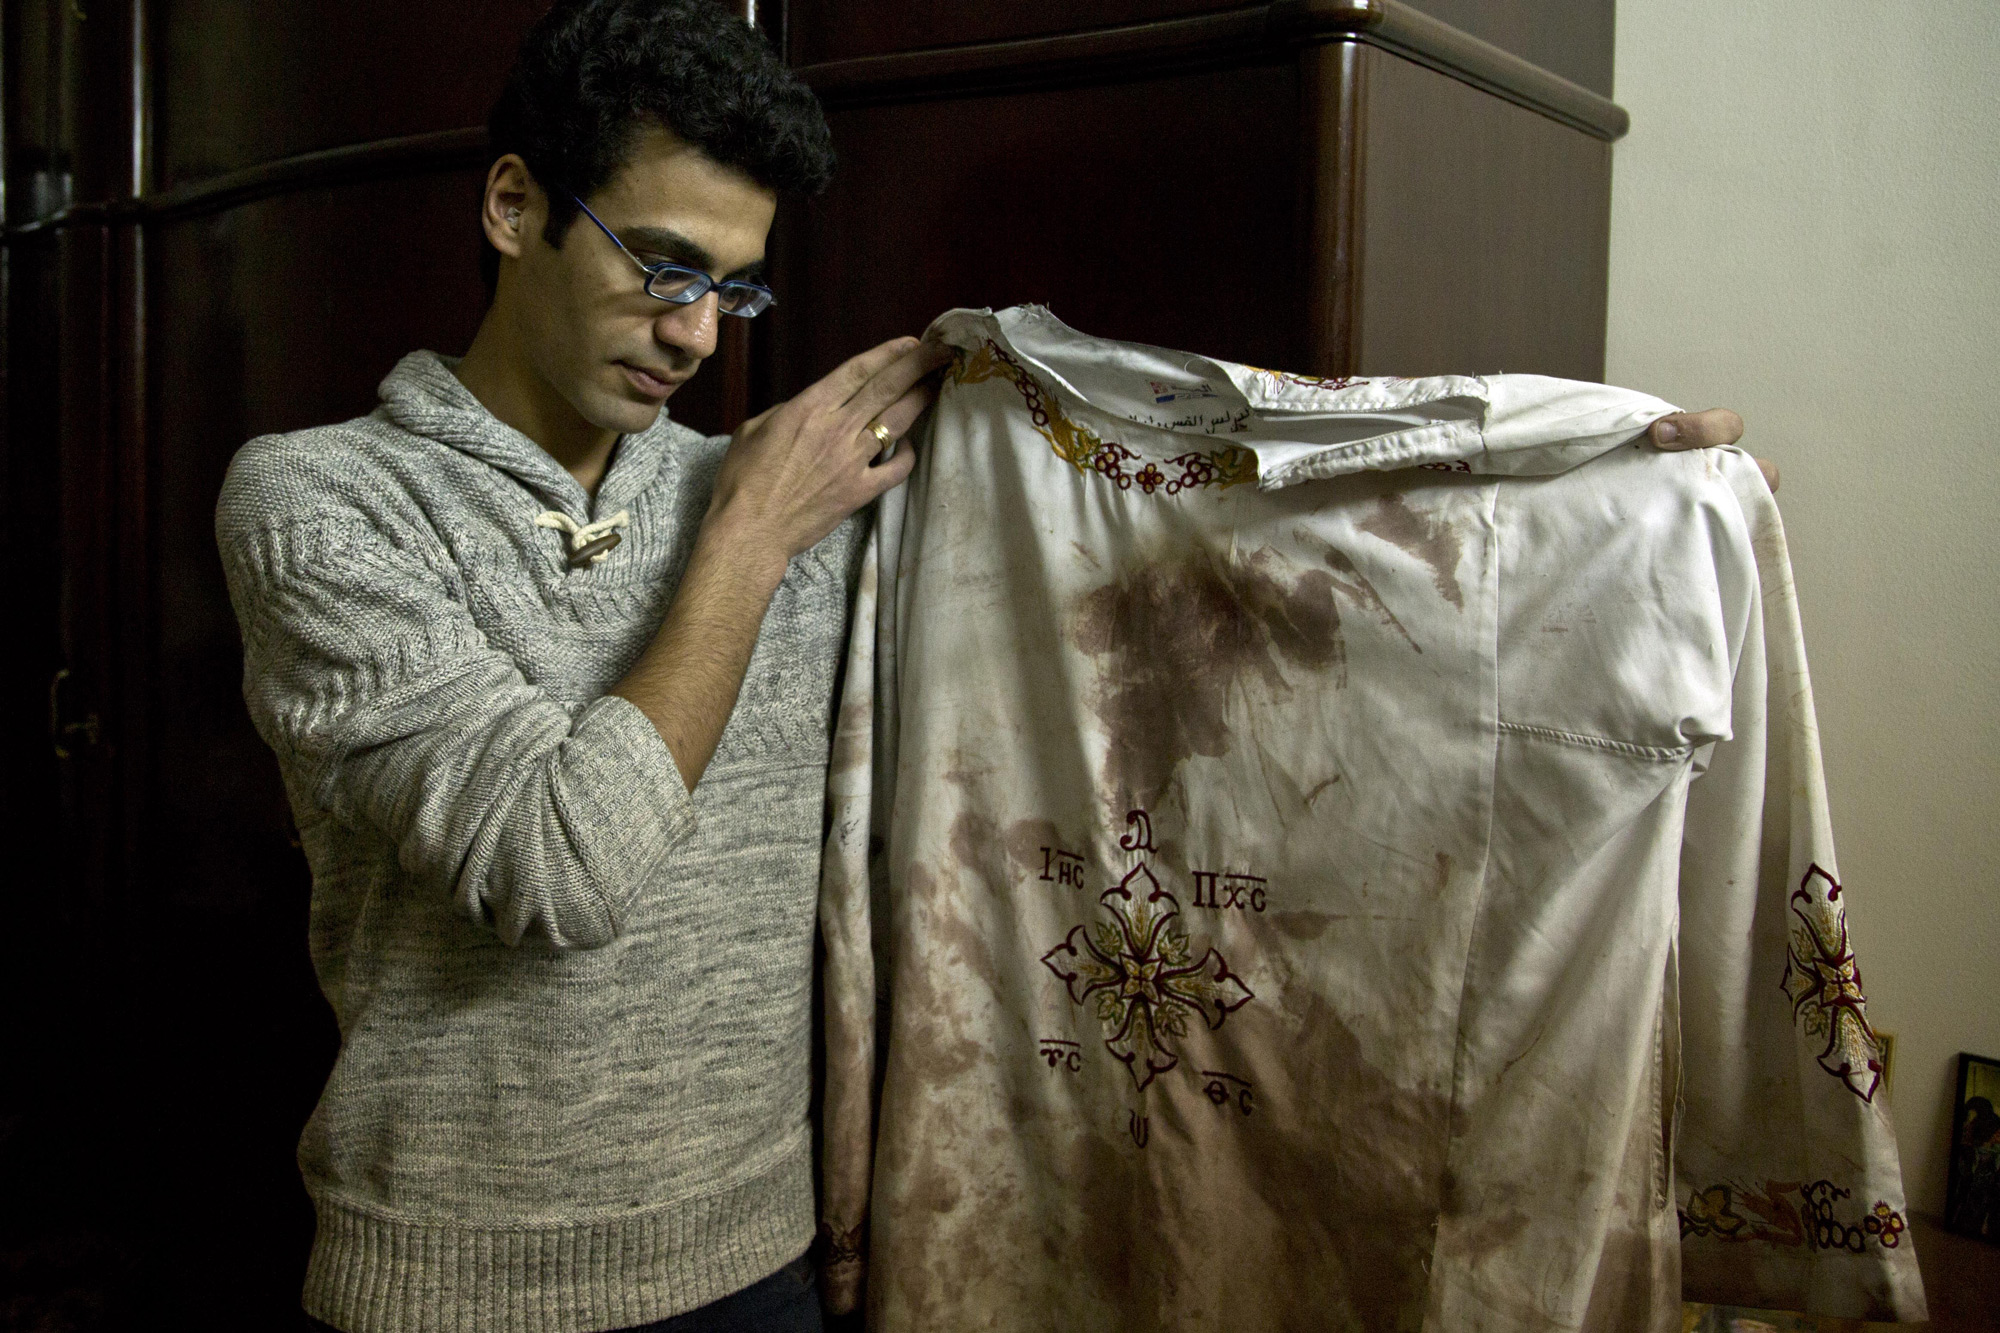 Kirollos is the brother of Bishoy Danial who died in the Palm Sunday suicide bombing in Tanta. He is holding the vestment that his father, Priest Daniel, wore during the attack. Tanta, Egypt, April 12, 2017 (Photo by Roger Anis/GroundTruth)